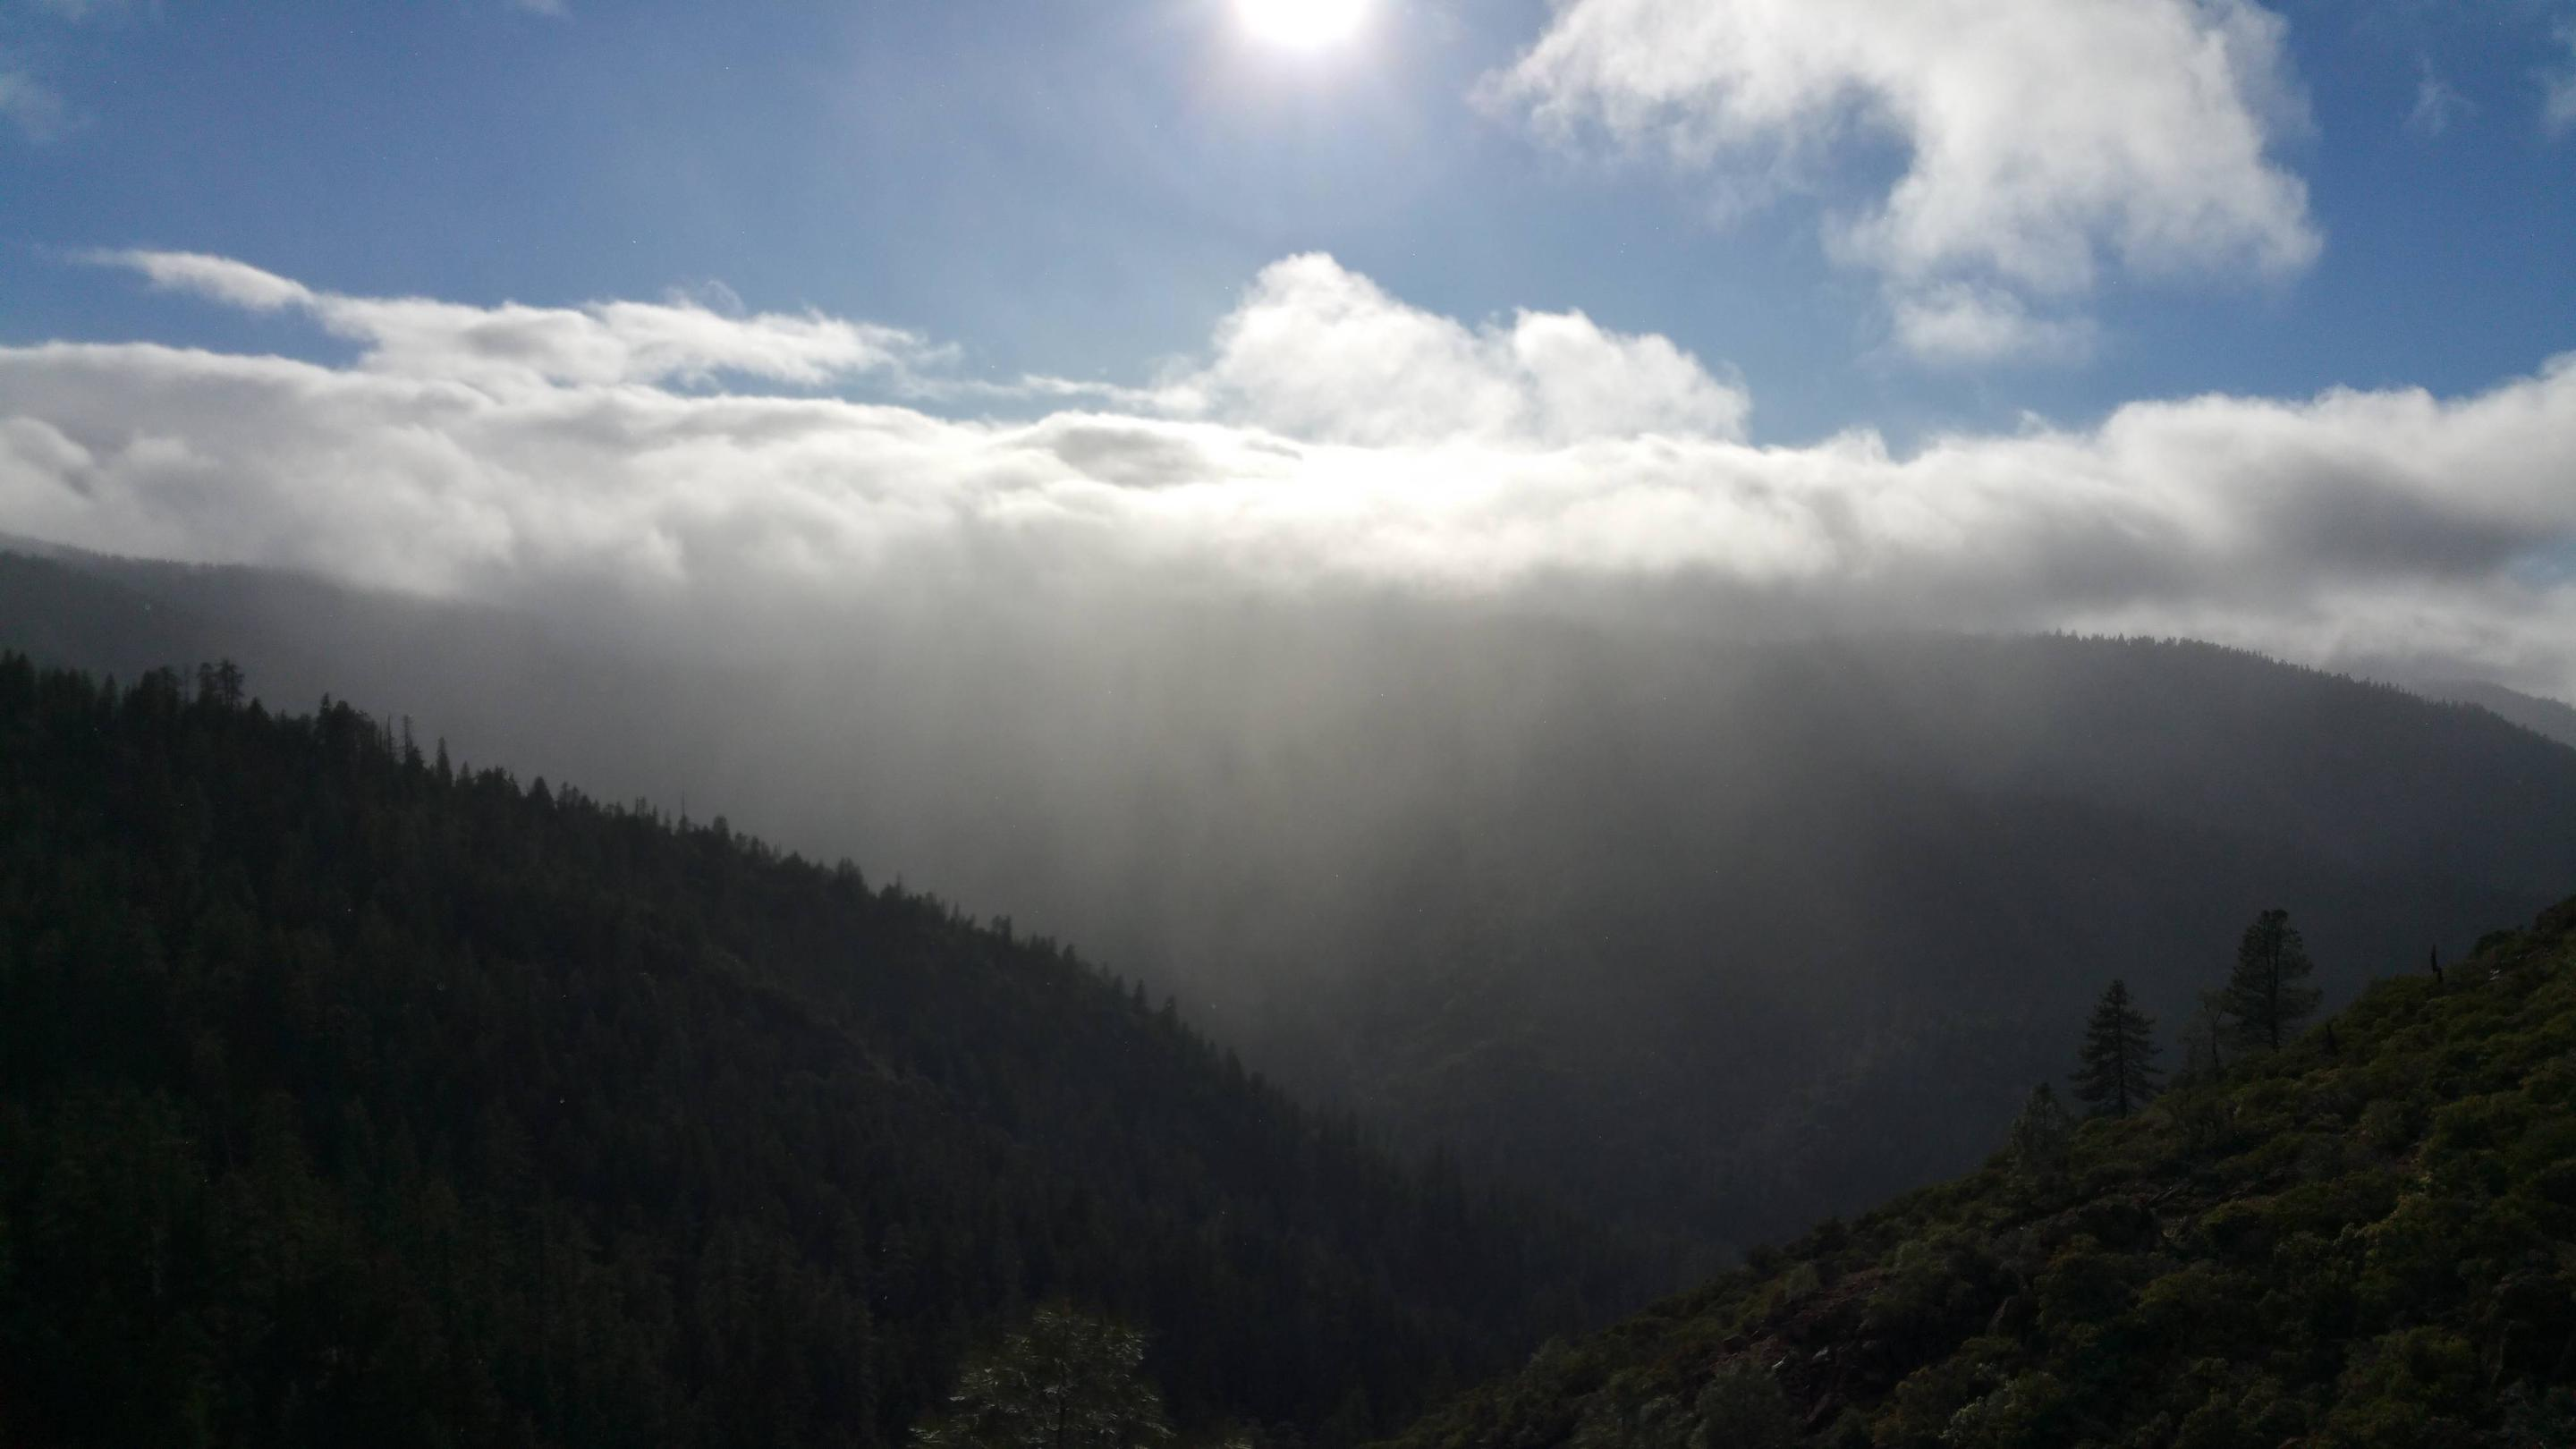 View of mountains, clouds, sun.One of the many beautiful views guests might see on the way to the cabin.